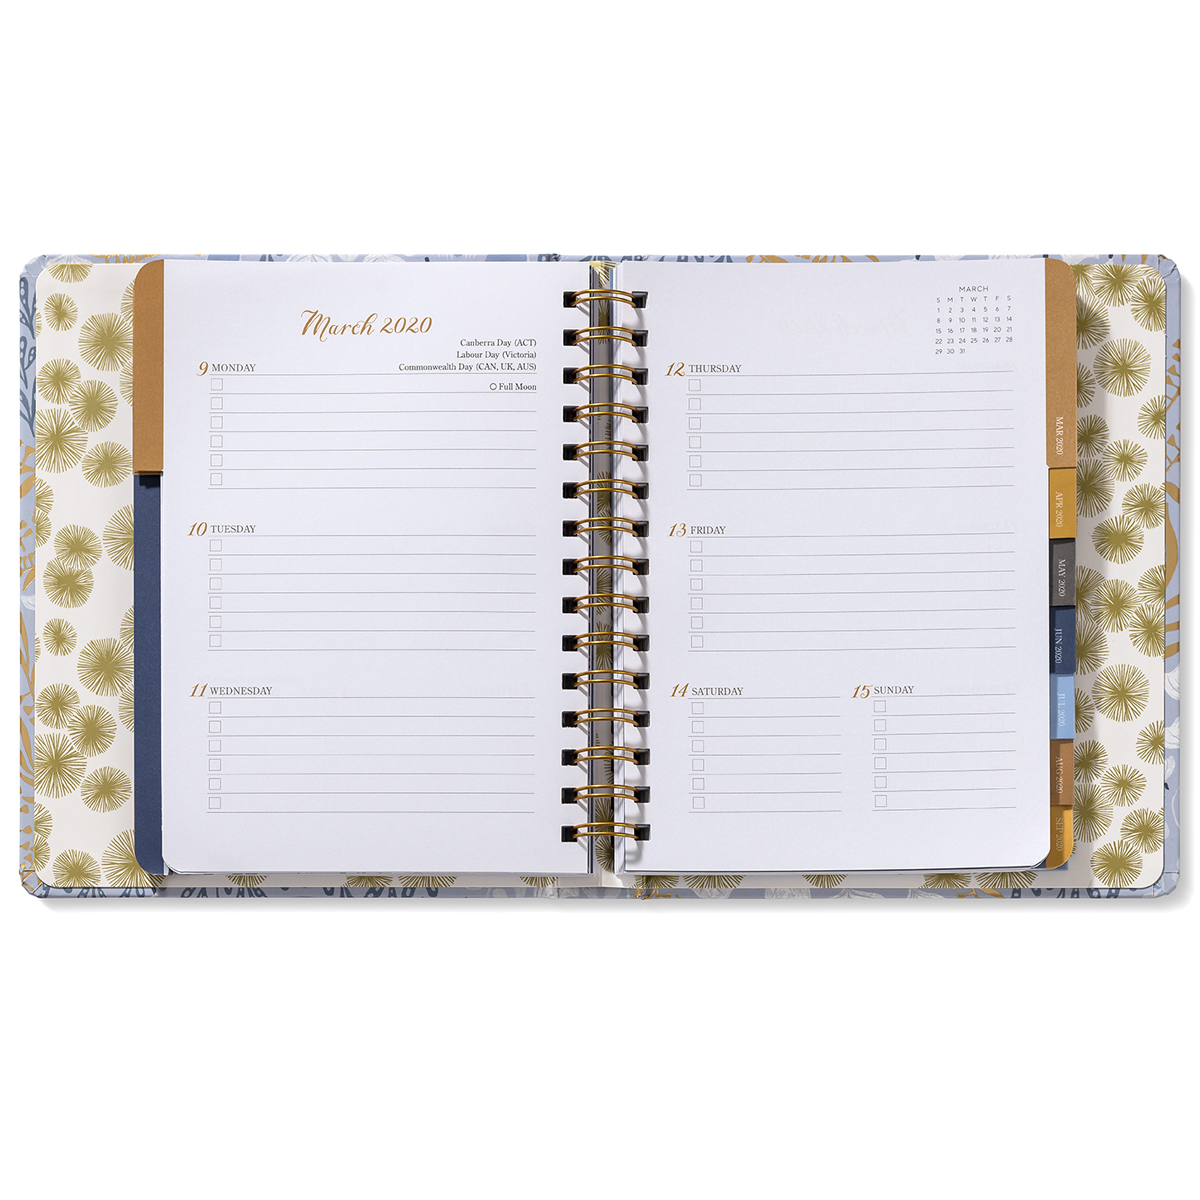 High_Note_Garden_Bee_Planner5.jpg